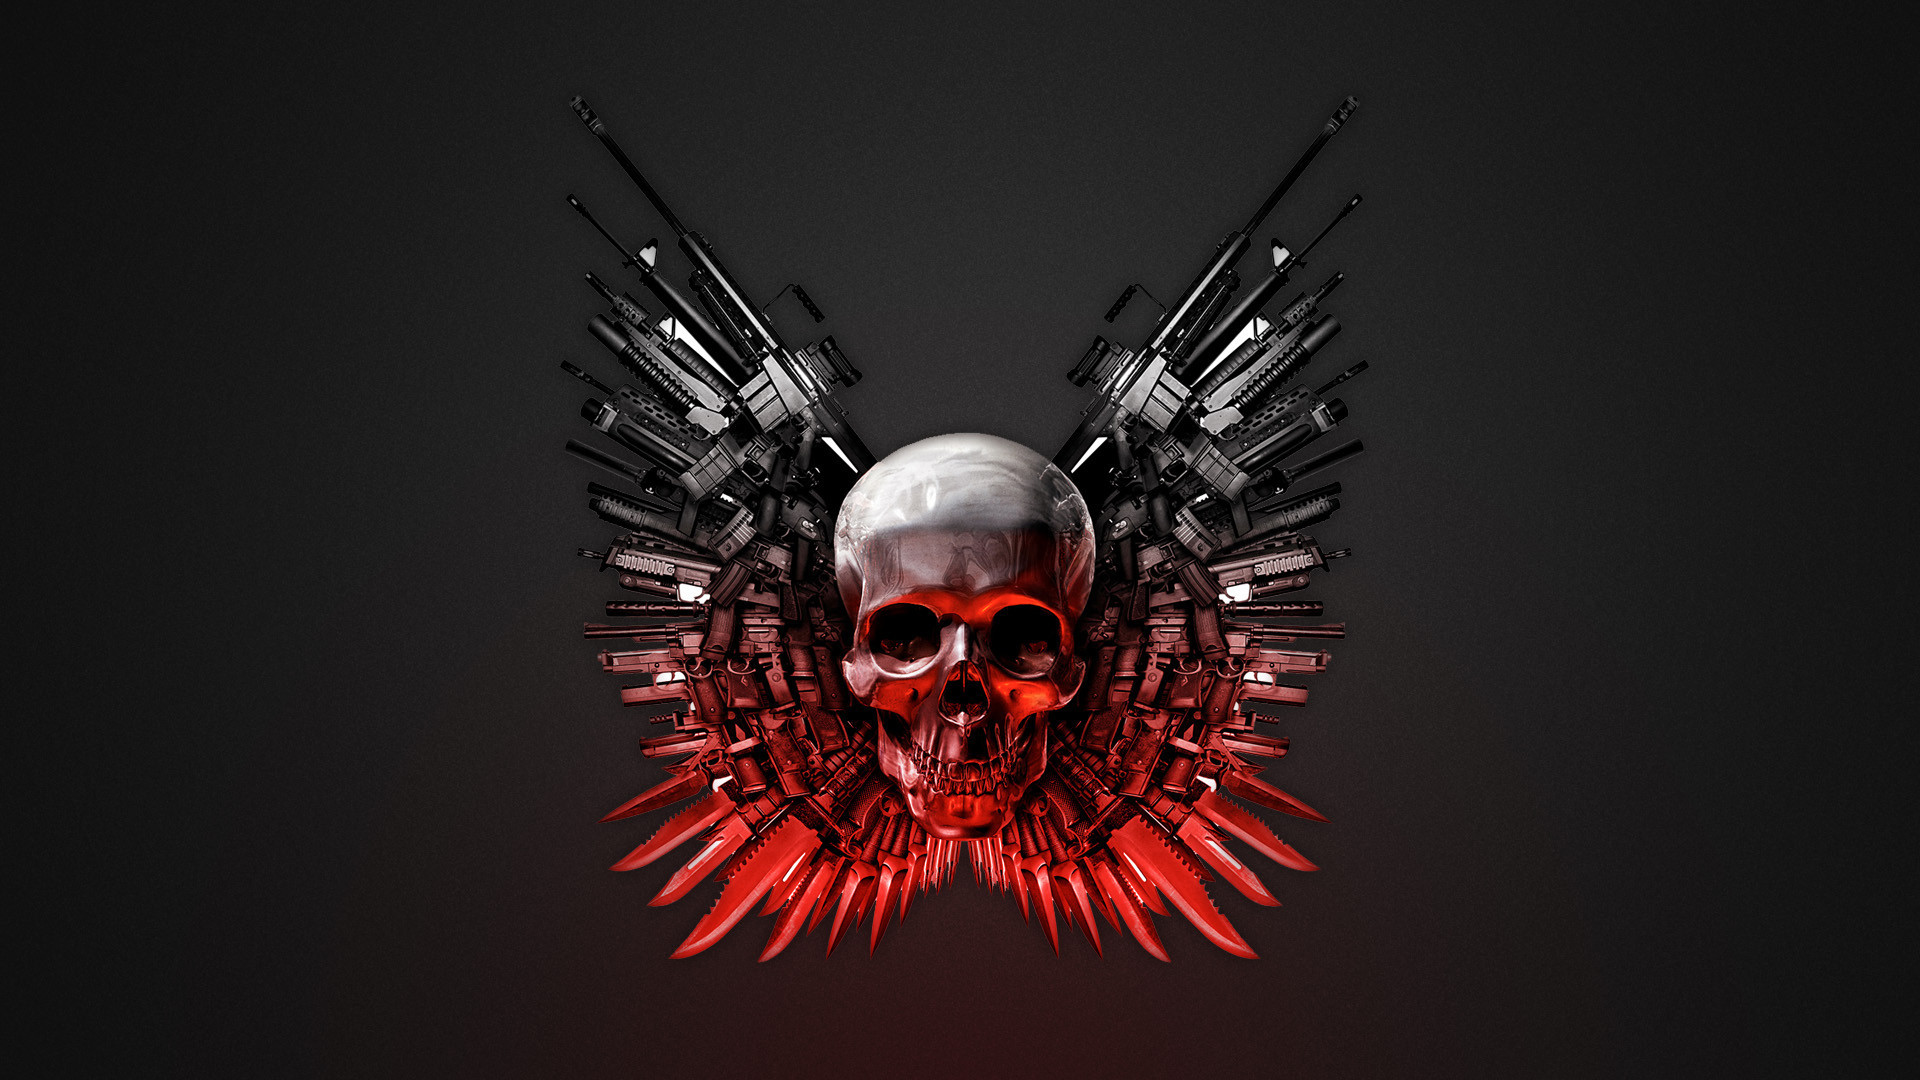 the expendables weapons - wallpaper, high definition, high quality